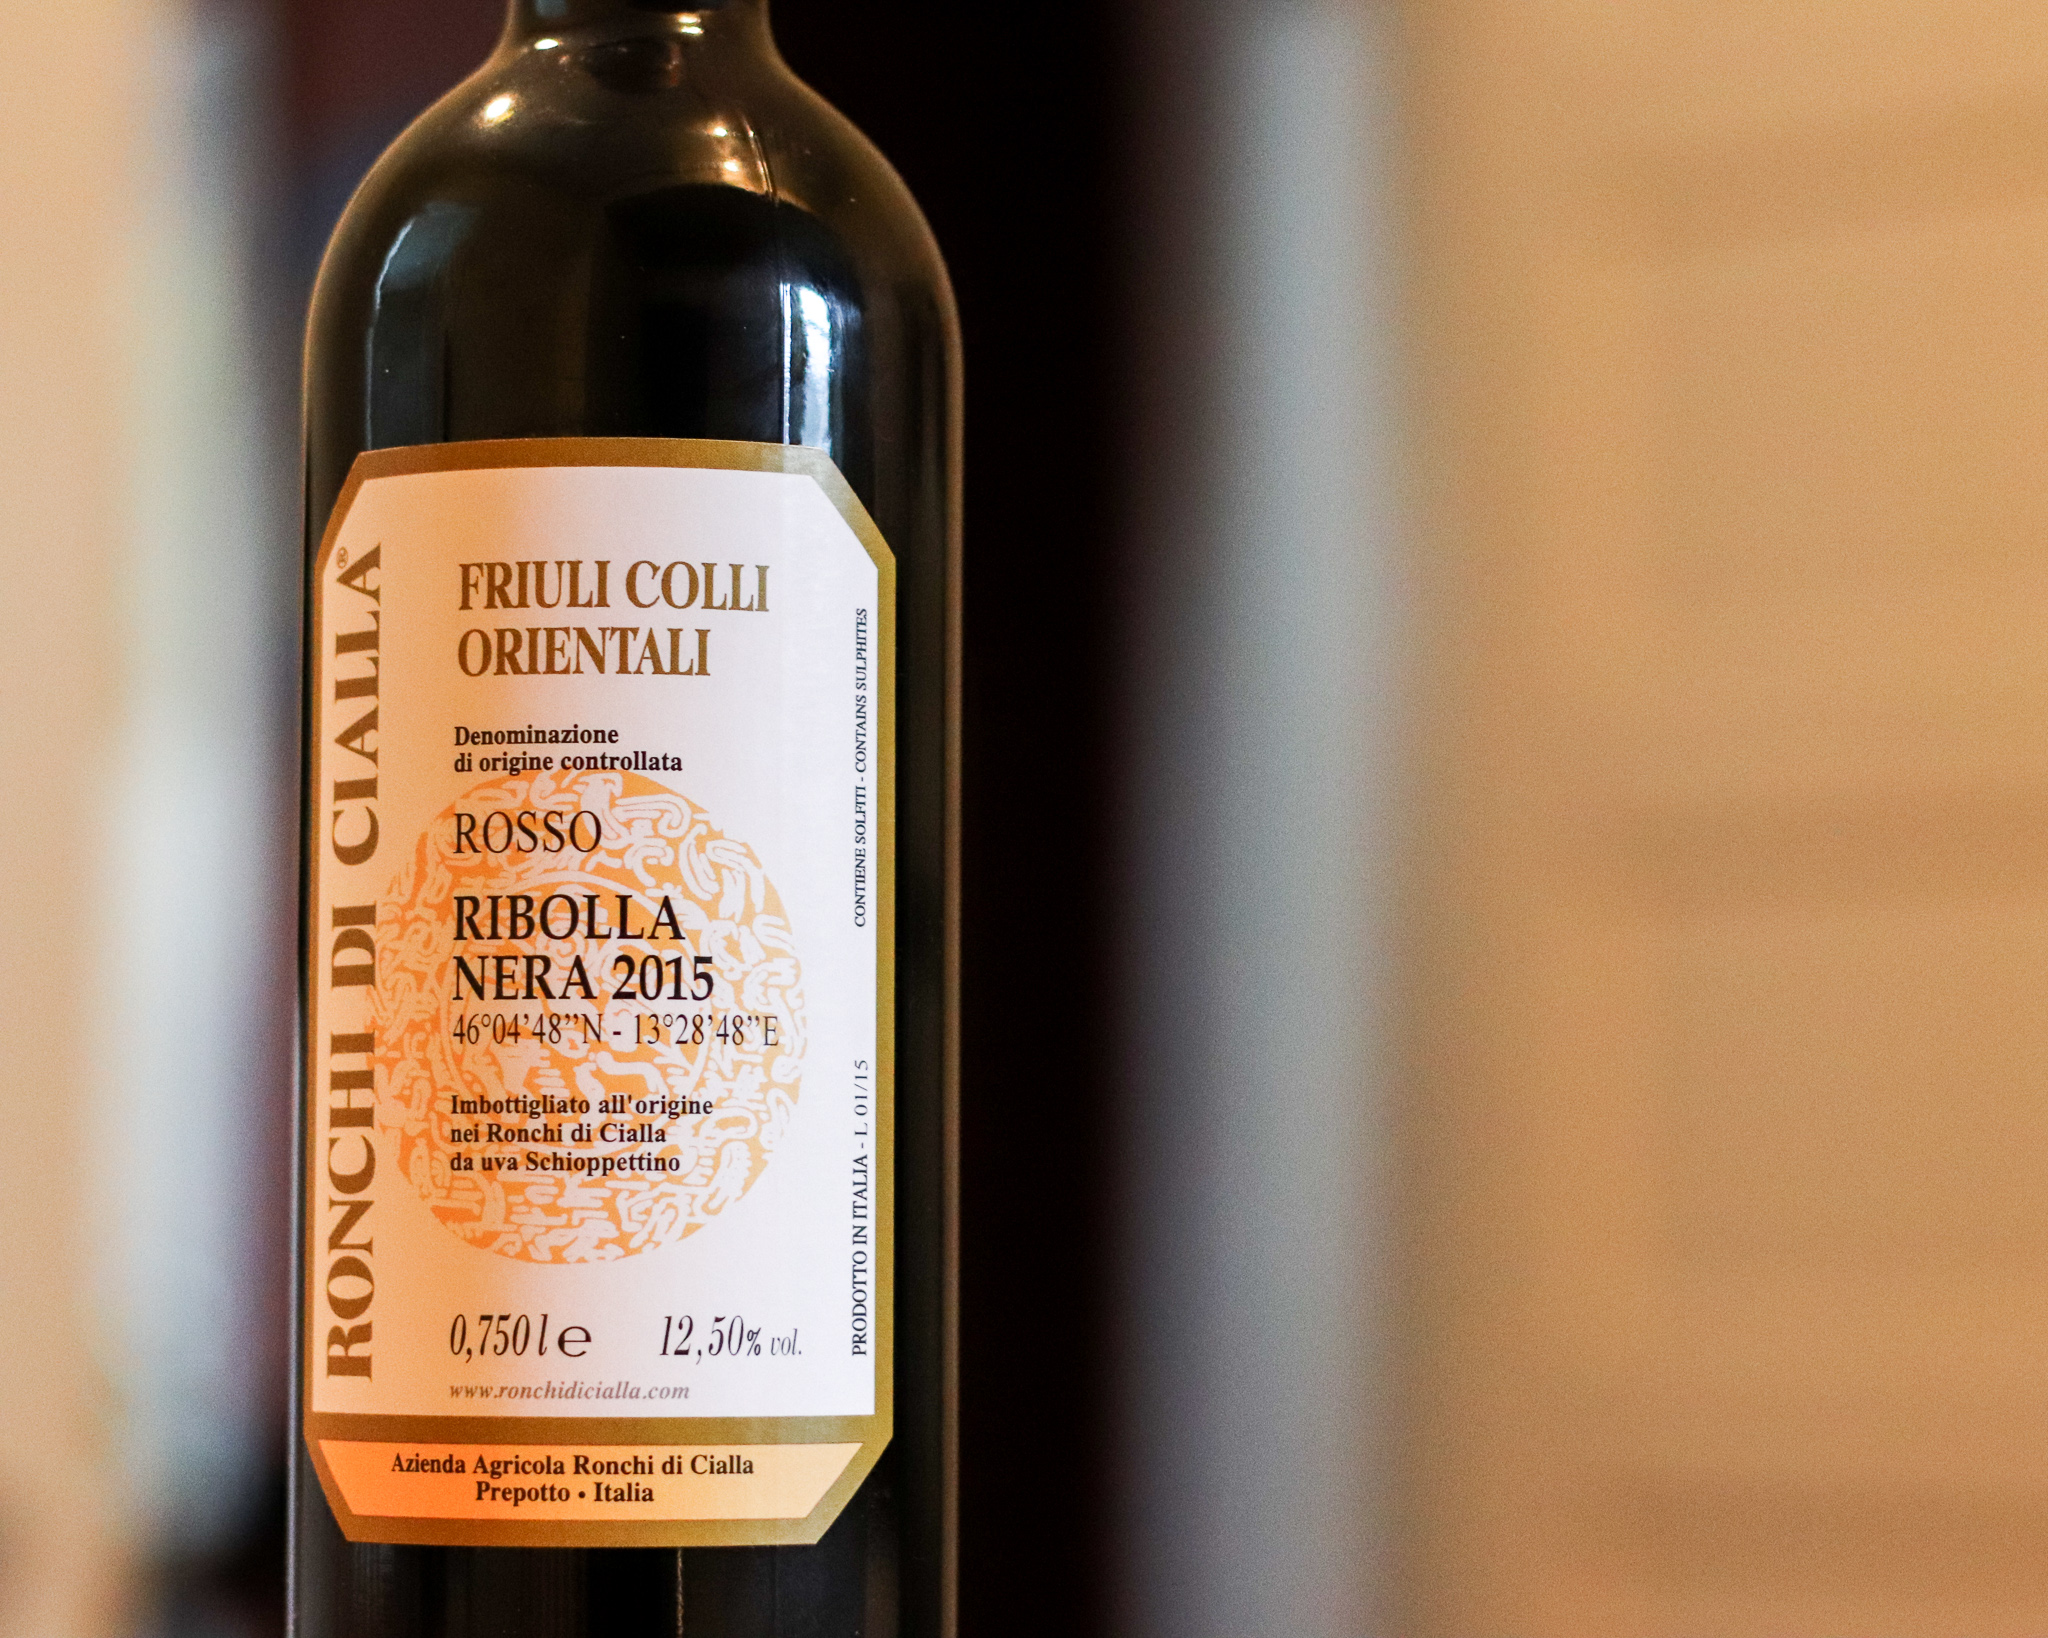 Ribolla Nera, or Schioppettino, was rescued by winemaker Paolo Rapuzzi and is an elegant, expressive, and unique representation of small production Italian wine. This smells so much like peppercorn it is like cutting into a steak au poivre.